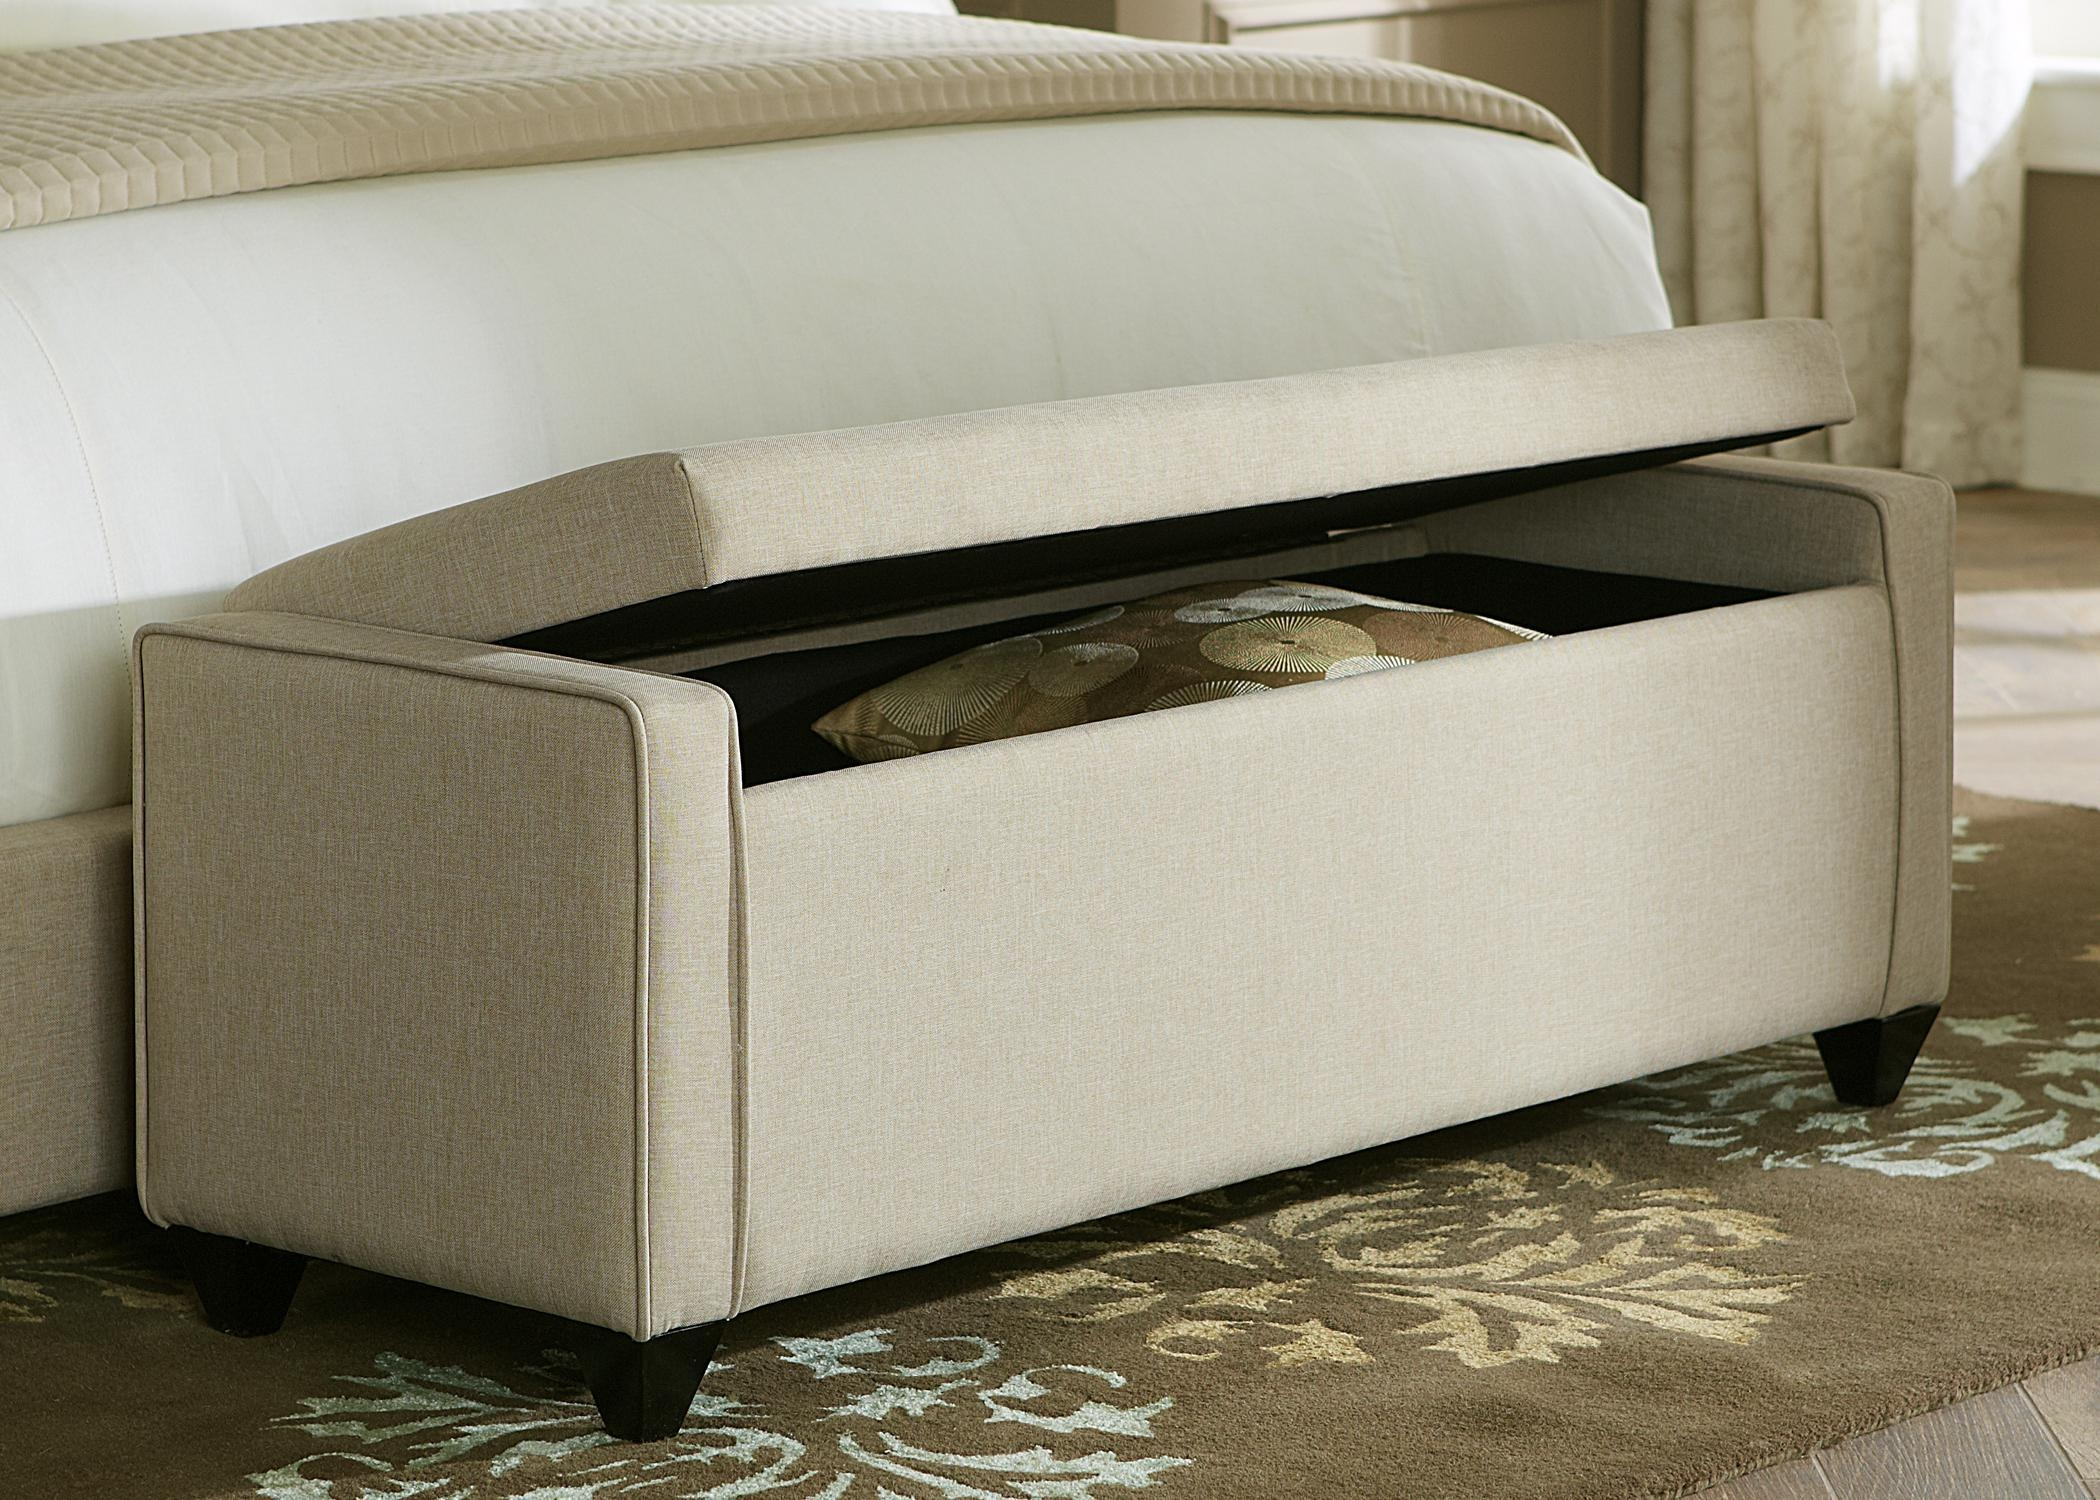 Bedroom Furniture : Storage Bench With Seat Bedroom Upholstered Within Bedroom Bench Sofas (View 6 of 20)